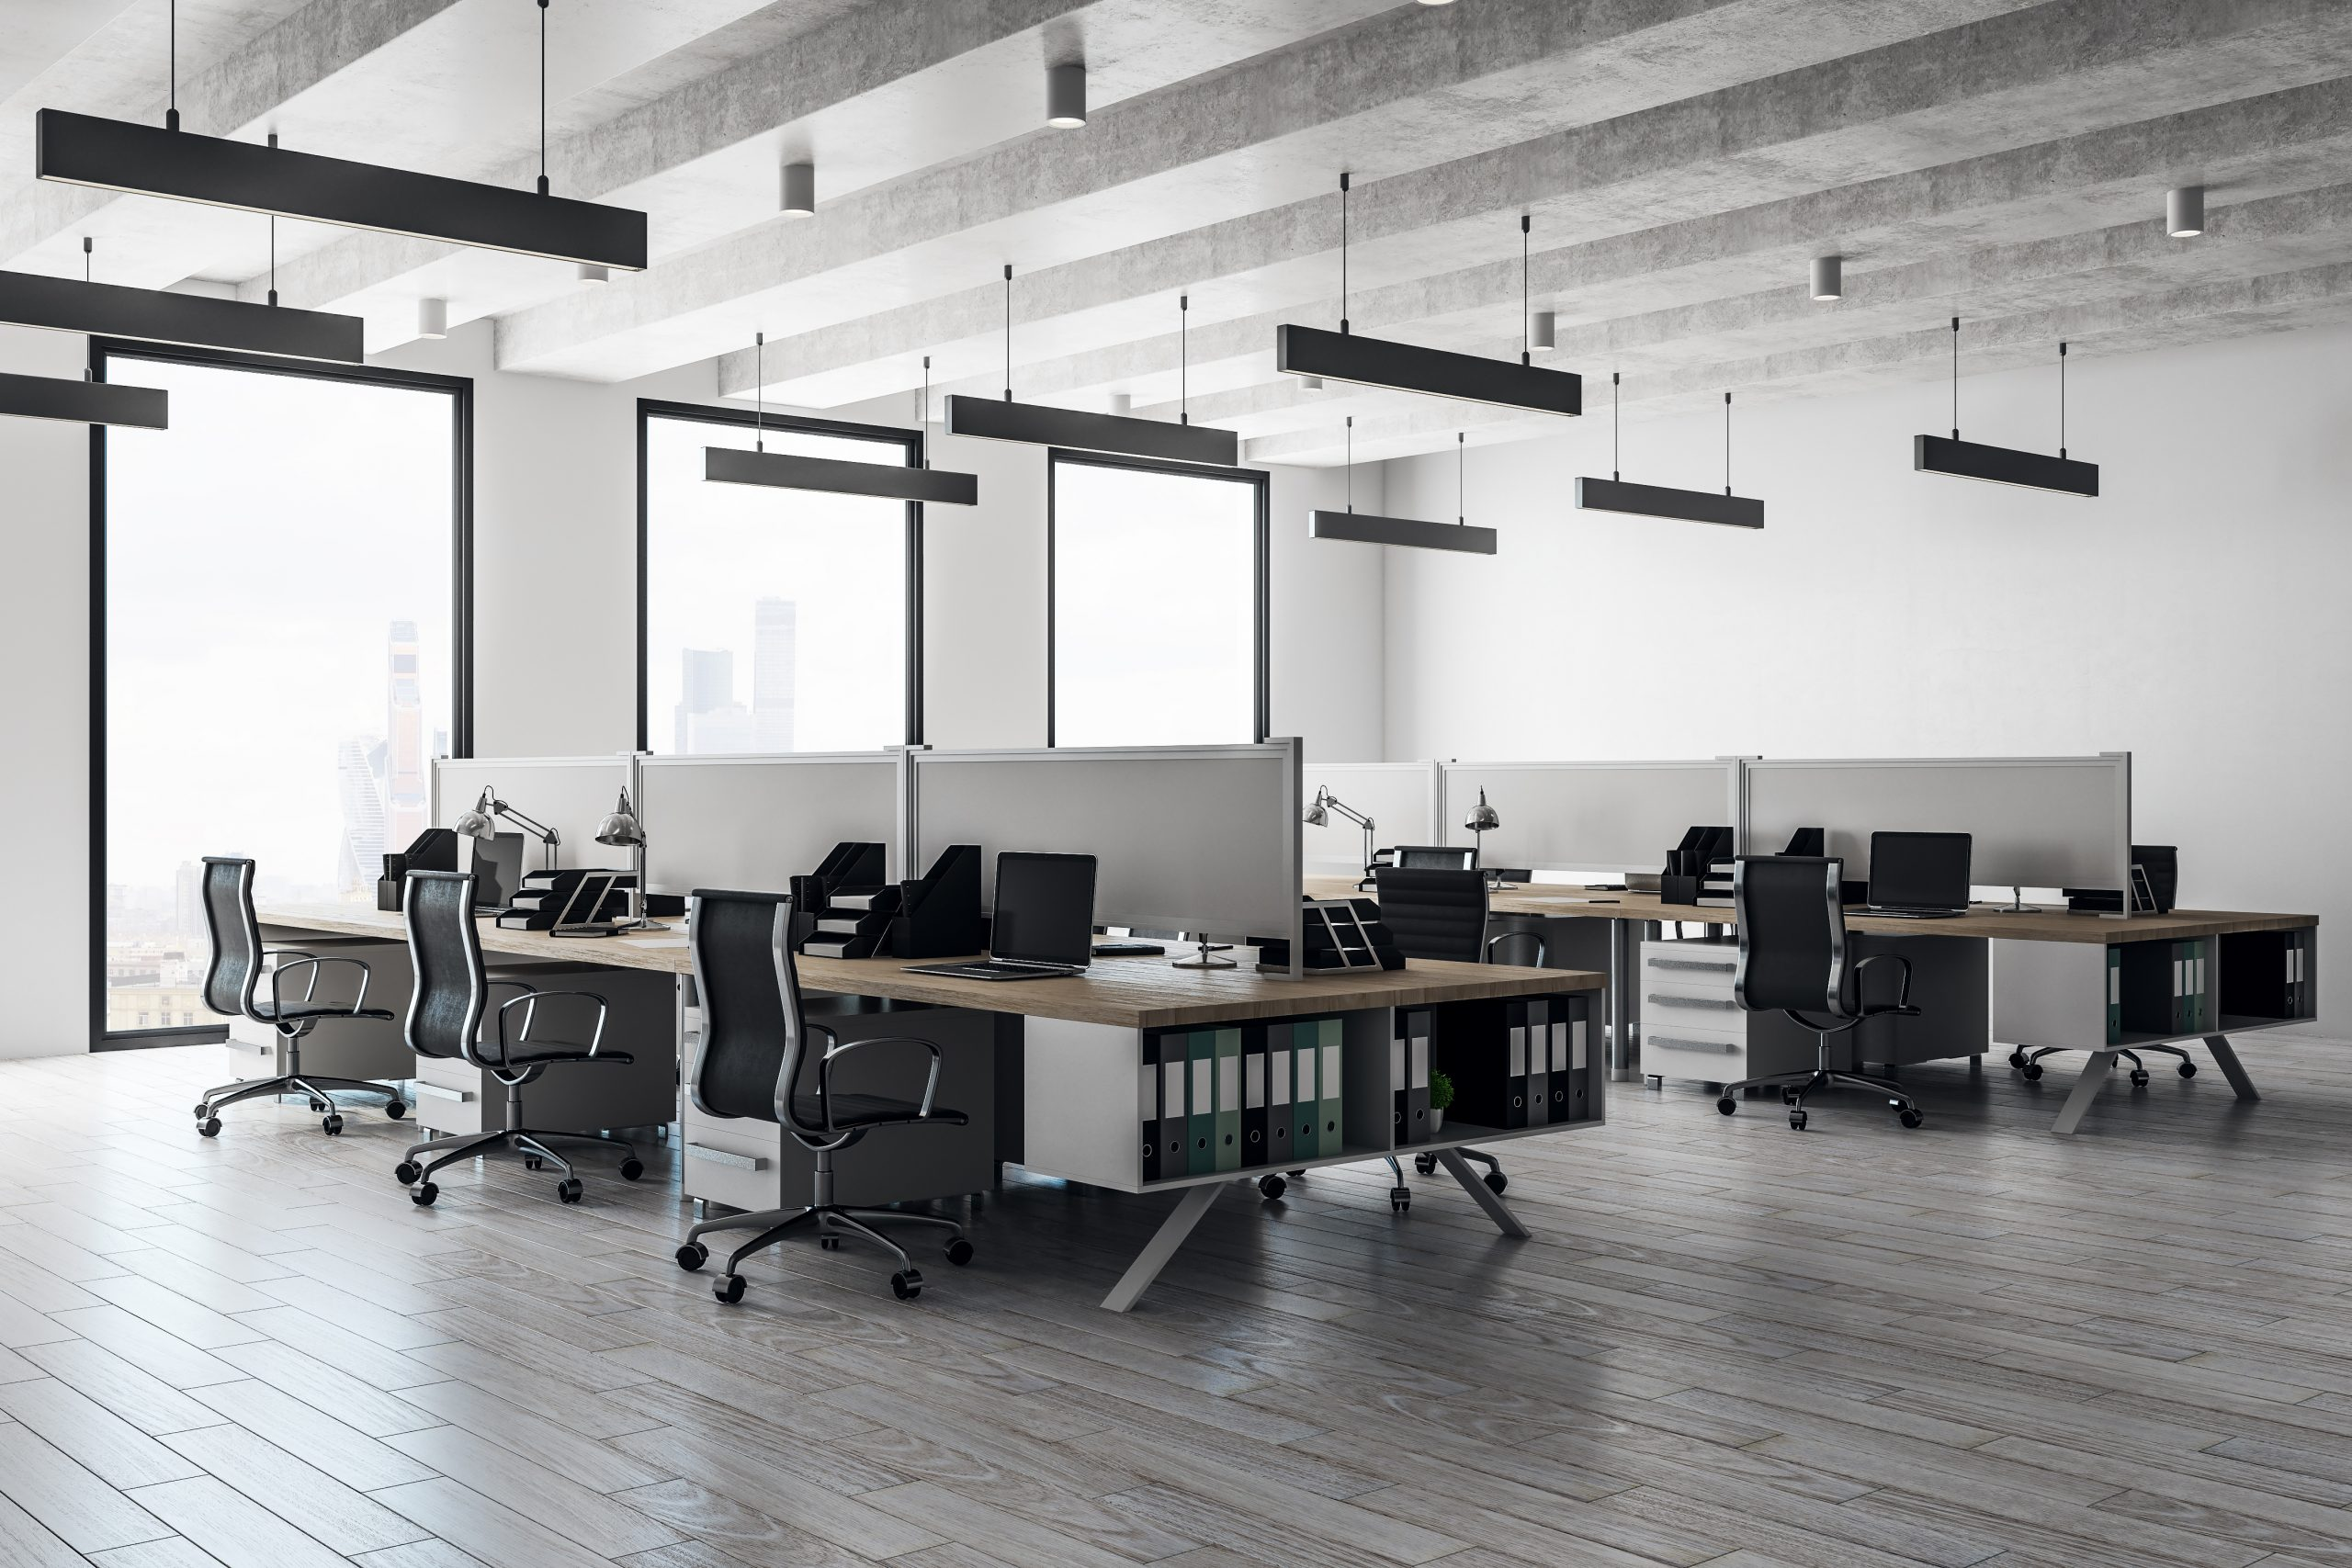 Office furniture installation after office fit out